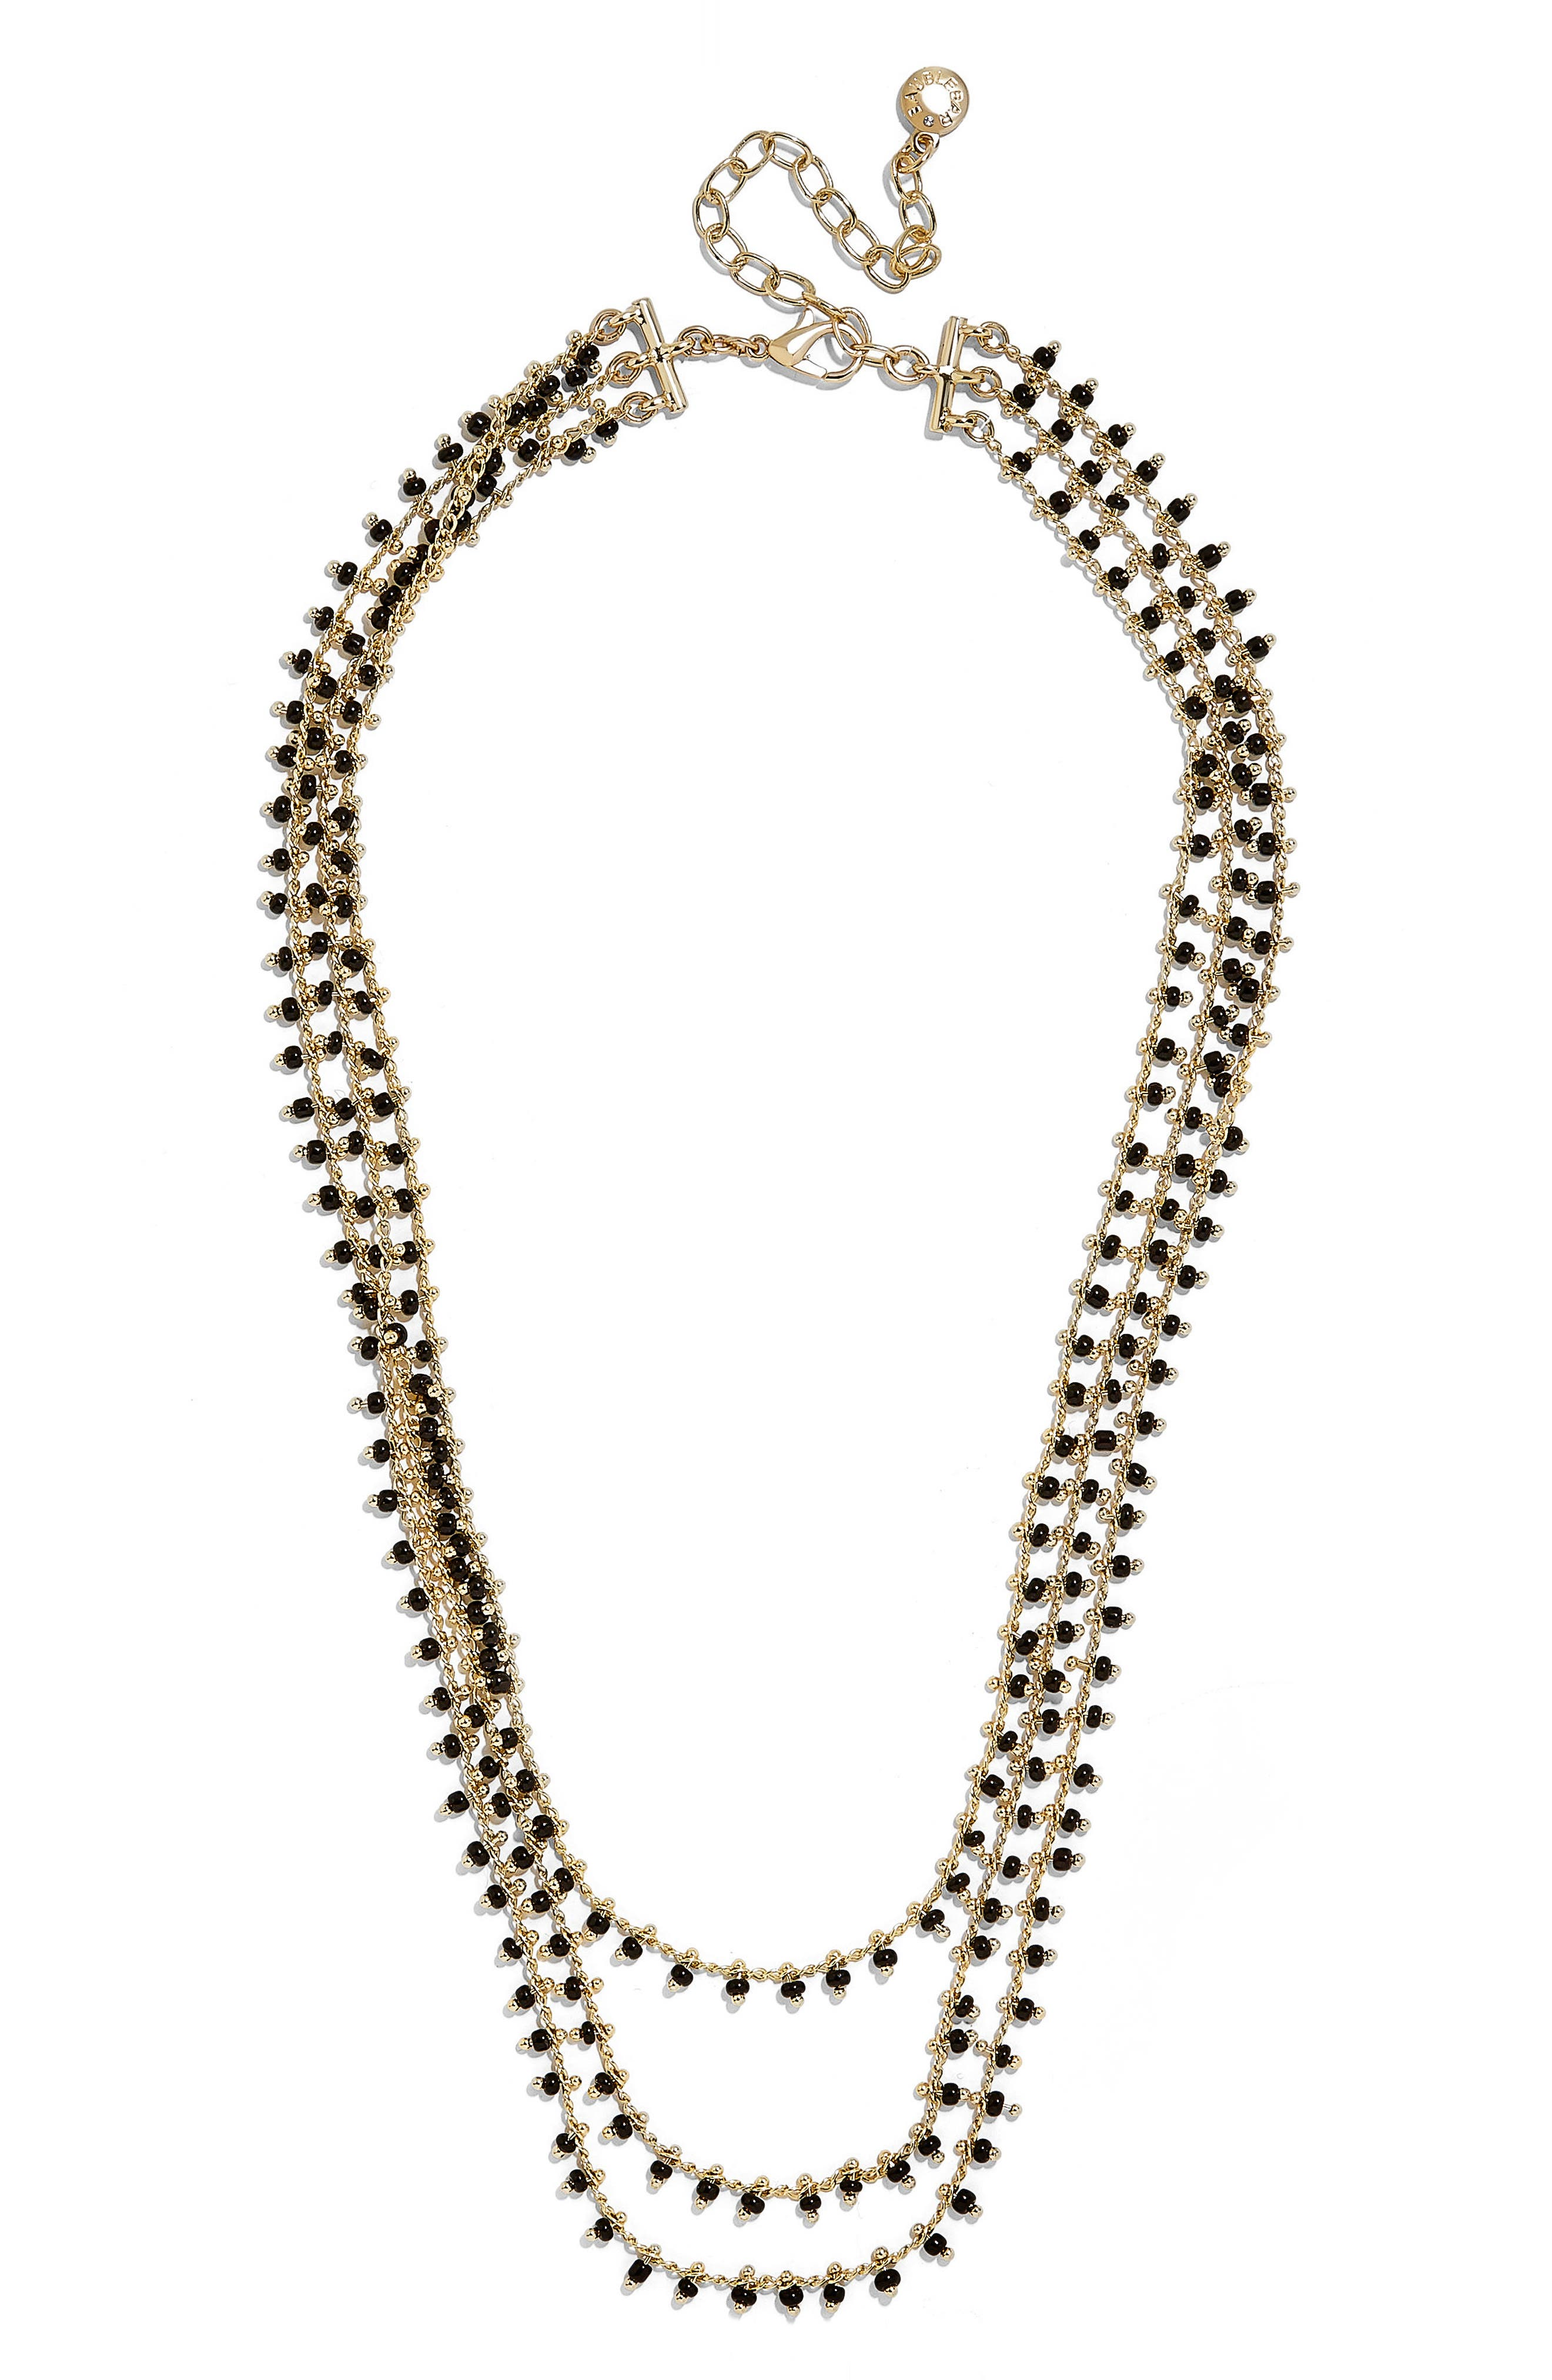 Kirrali Beaded Chain Necklace,                             Main thumbnail 1, color,                             Black